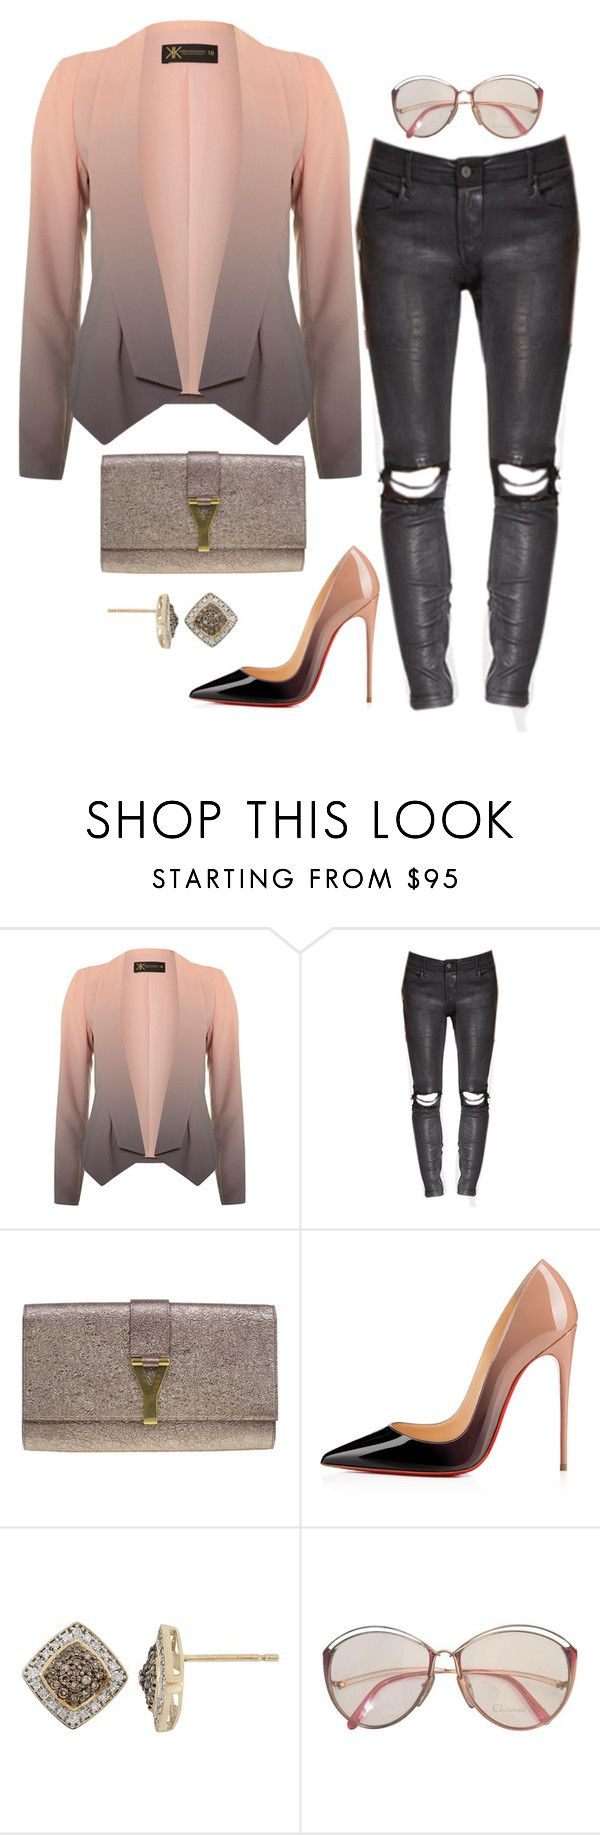 """""""The Ombré Effect"""" by fashionkill21 ❤ liked on Polyvore featuring Dorothy Perkins, Yves Saint Laurent, Christian Louboutin, YellOra and Christian Dior"""